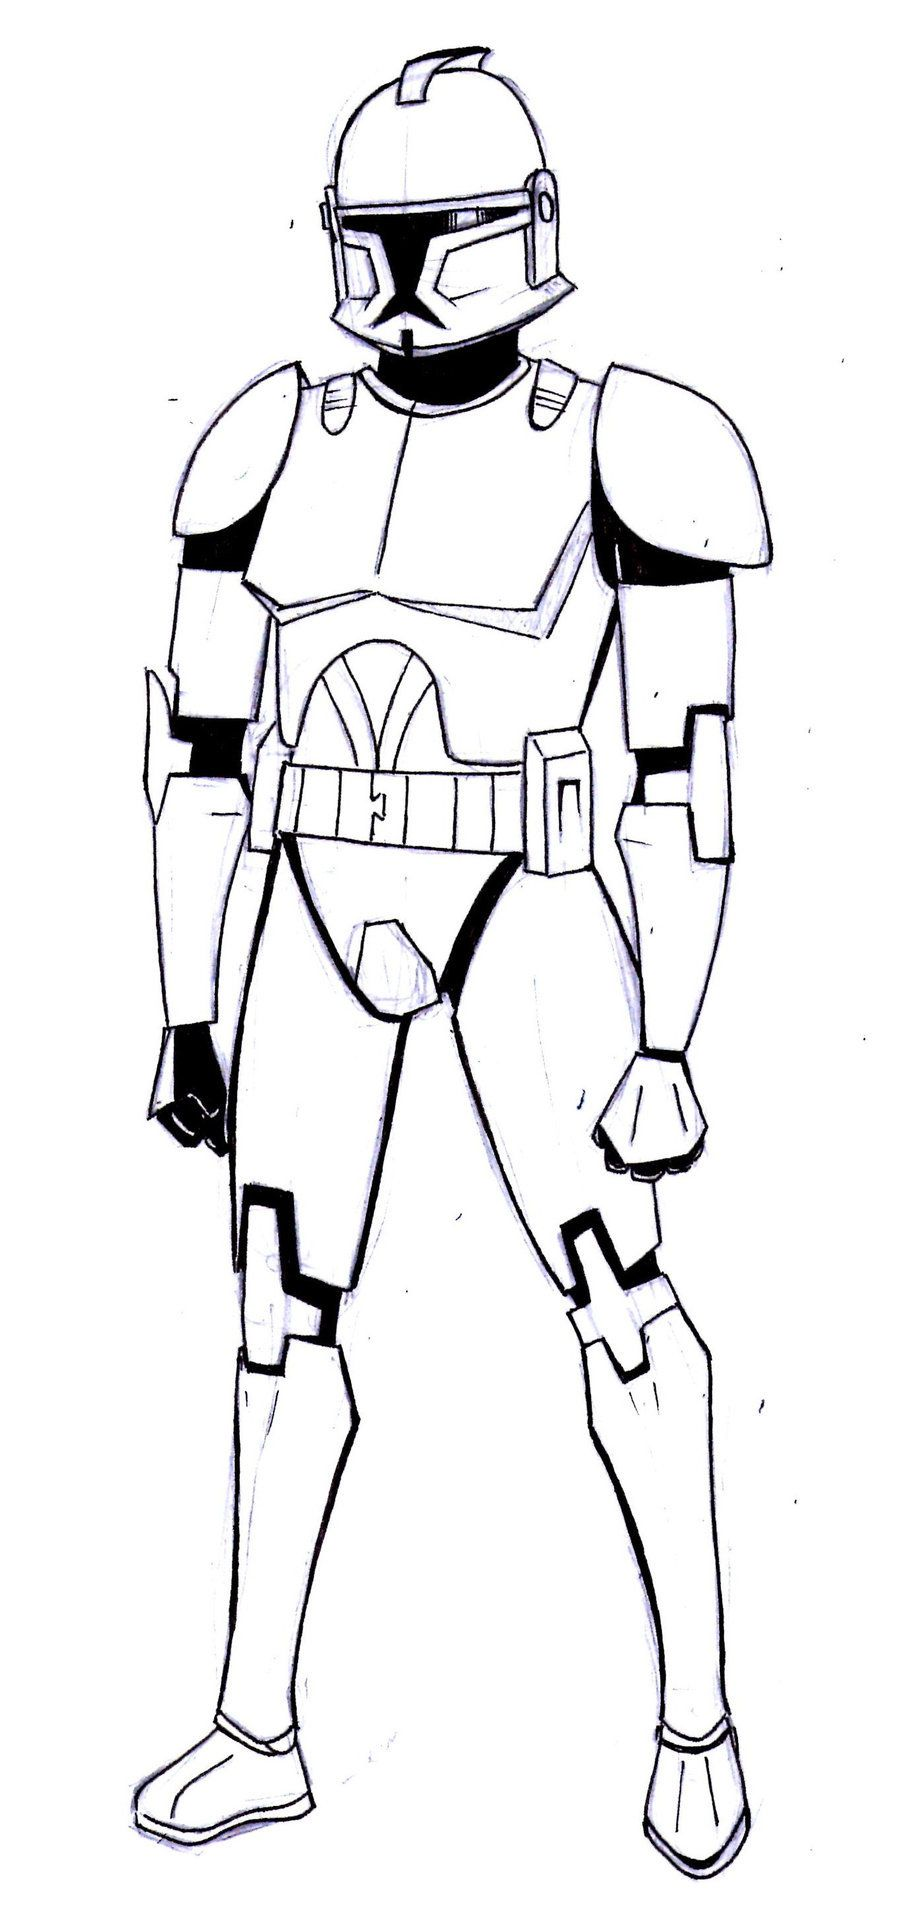 Adult Beauty Captain Rex Coloring Pages Images top star wars coloring pages captain rex az hicoloringpages gallery images